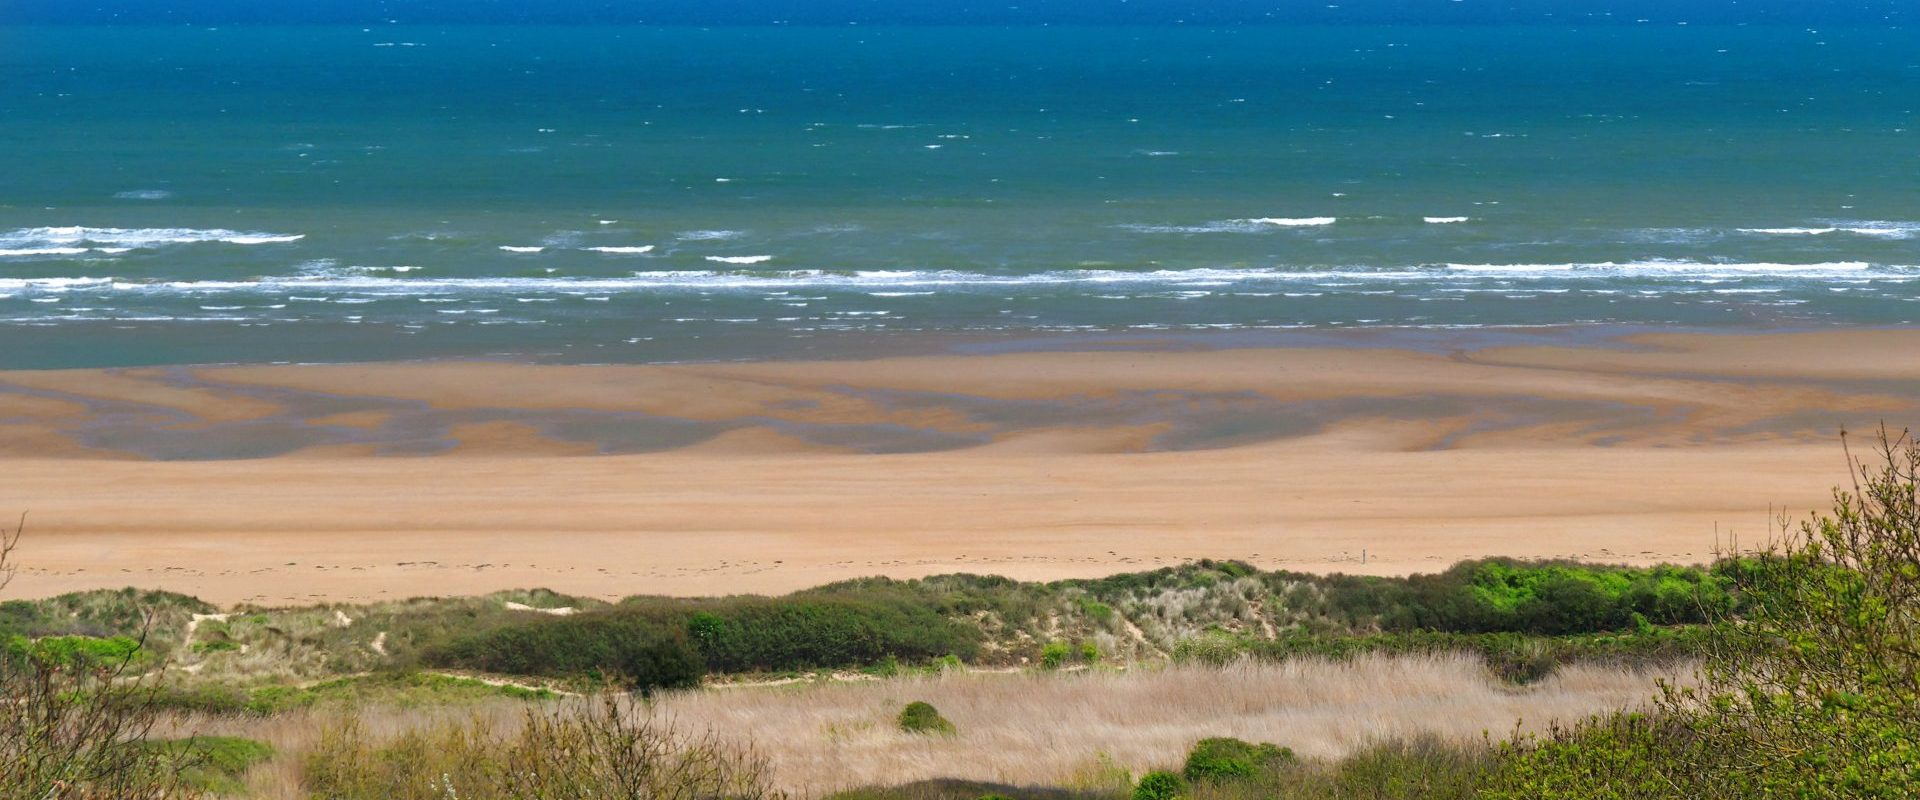 Camping Le Fanal : Omaha Beach Colleville Sur Mer 01